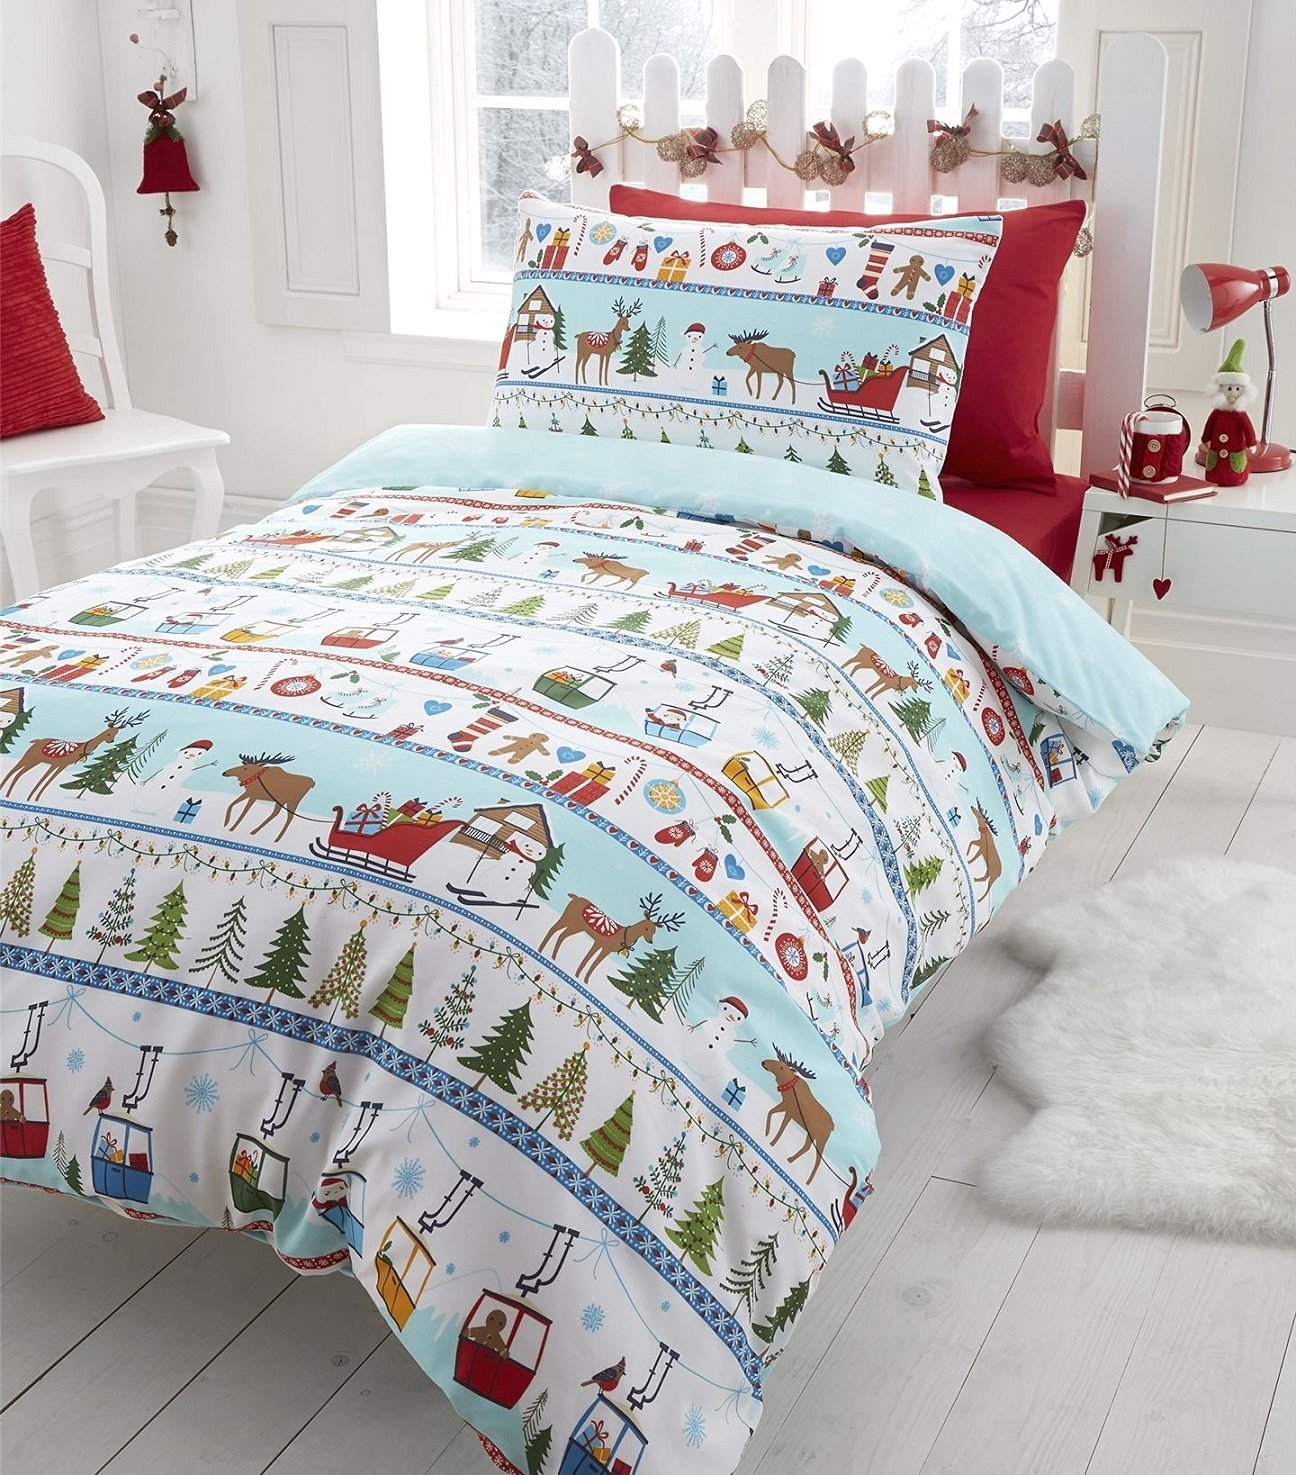 product red cartoon duvet sheet rbvahfojvouaokl winter store online cover girls bedclothes christmas bedding twin set size kids bed plush with boys linen queen velvet